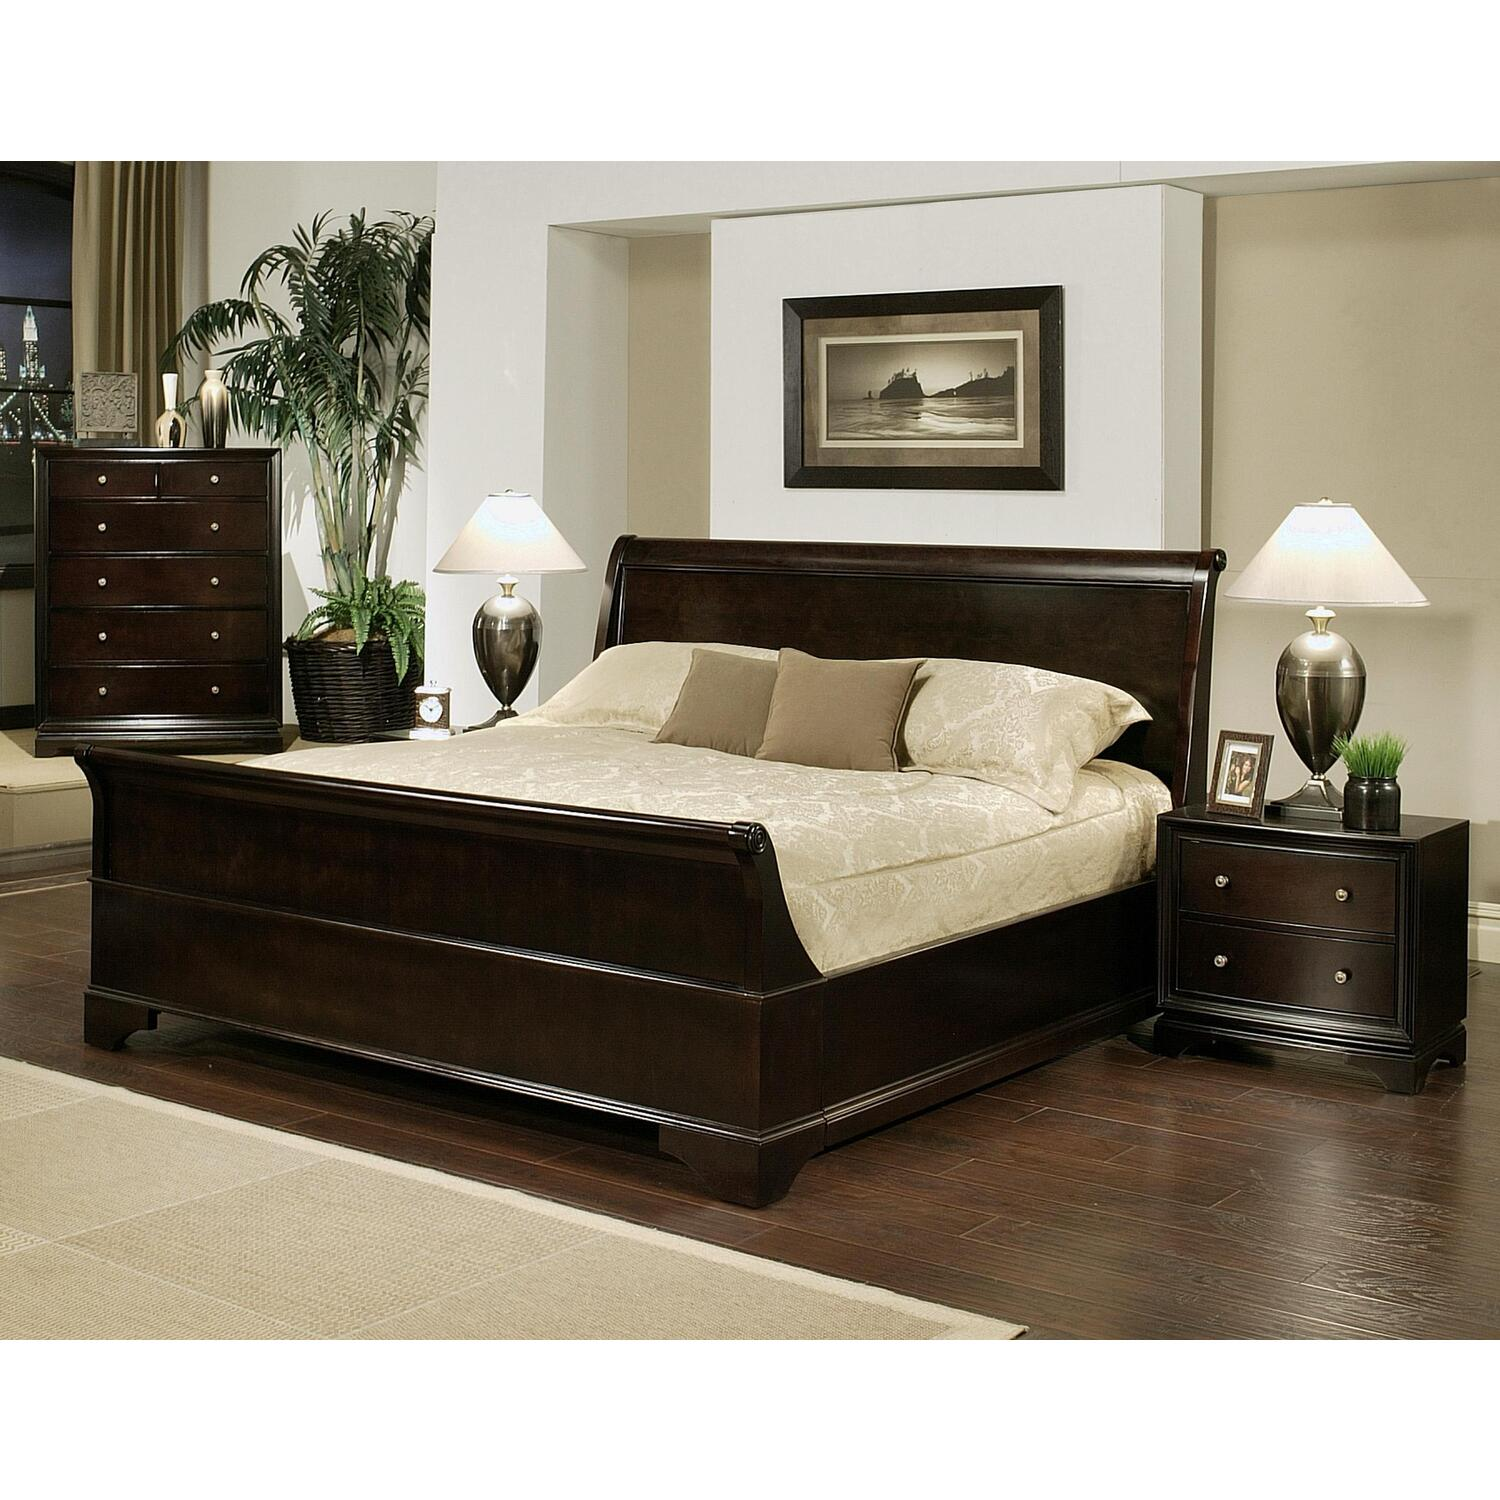 Original Sleigh Bed California King, You Should Know — One ...